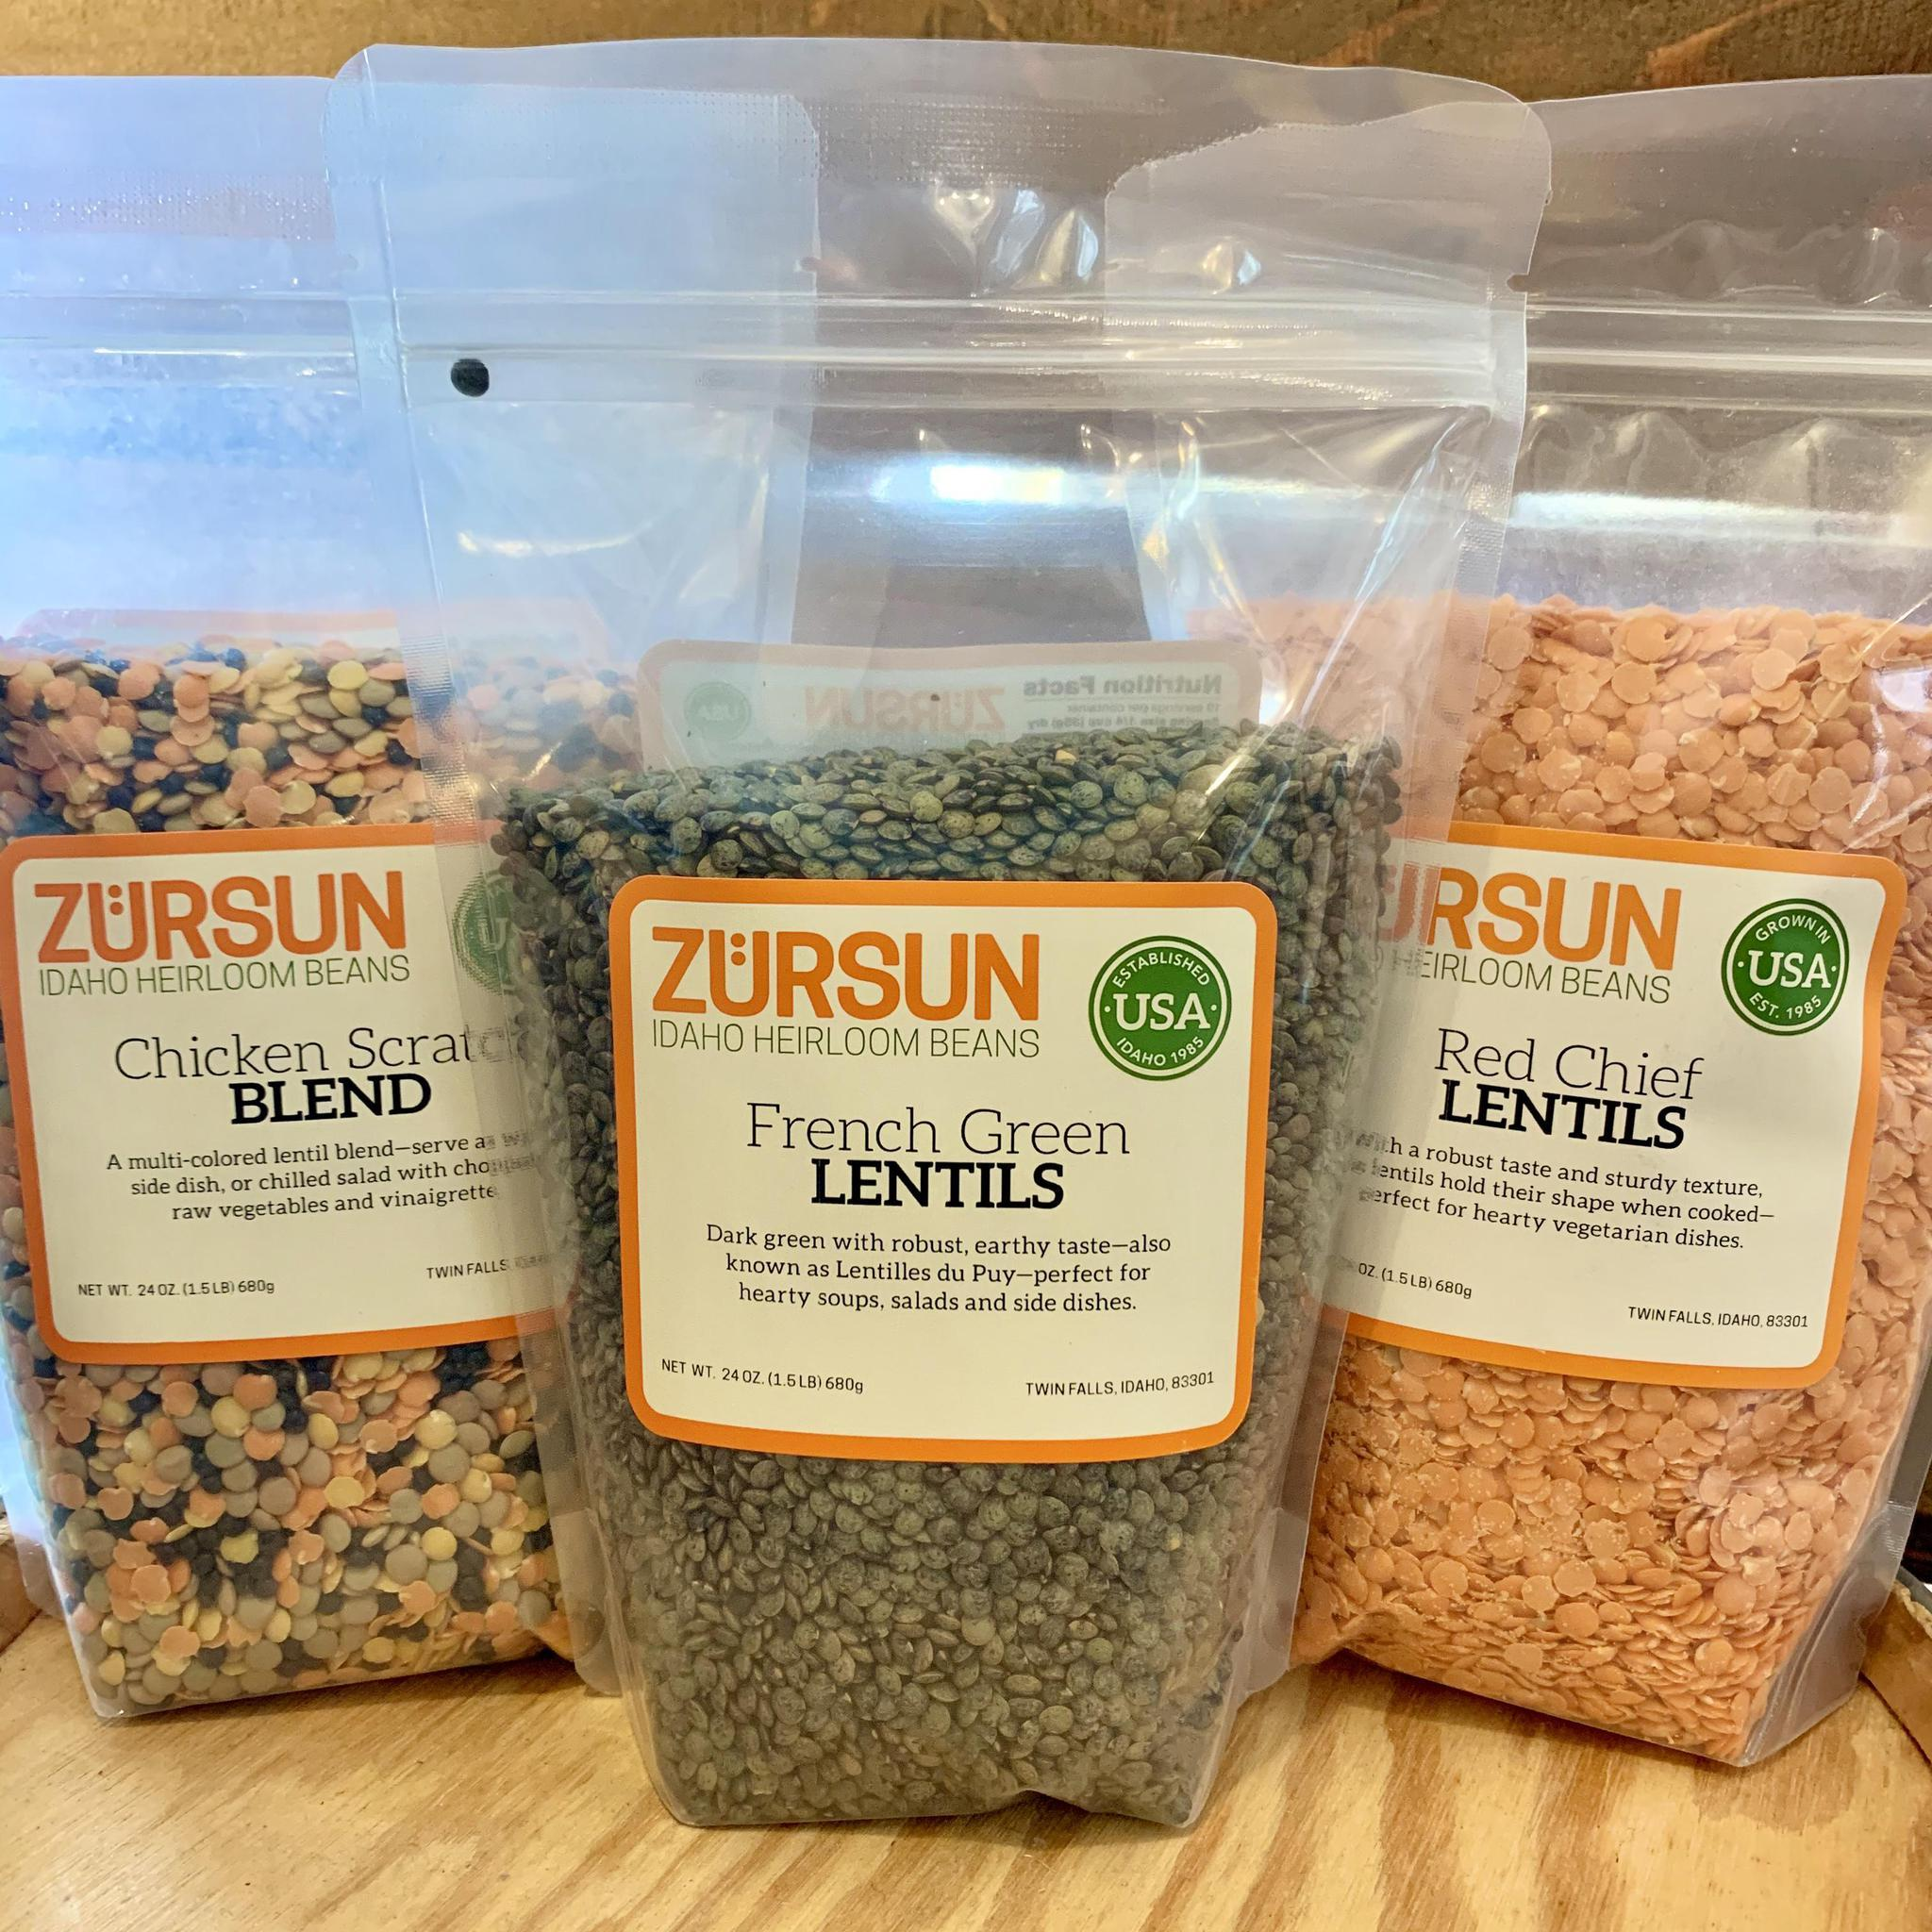 Heirloom Lentils by Zürsun Idaho Heirloom Beans French Green Lentil